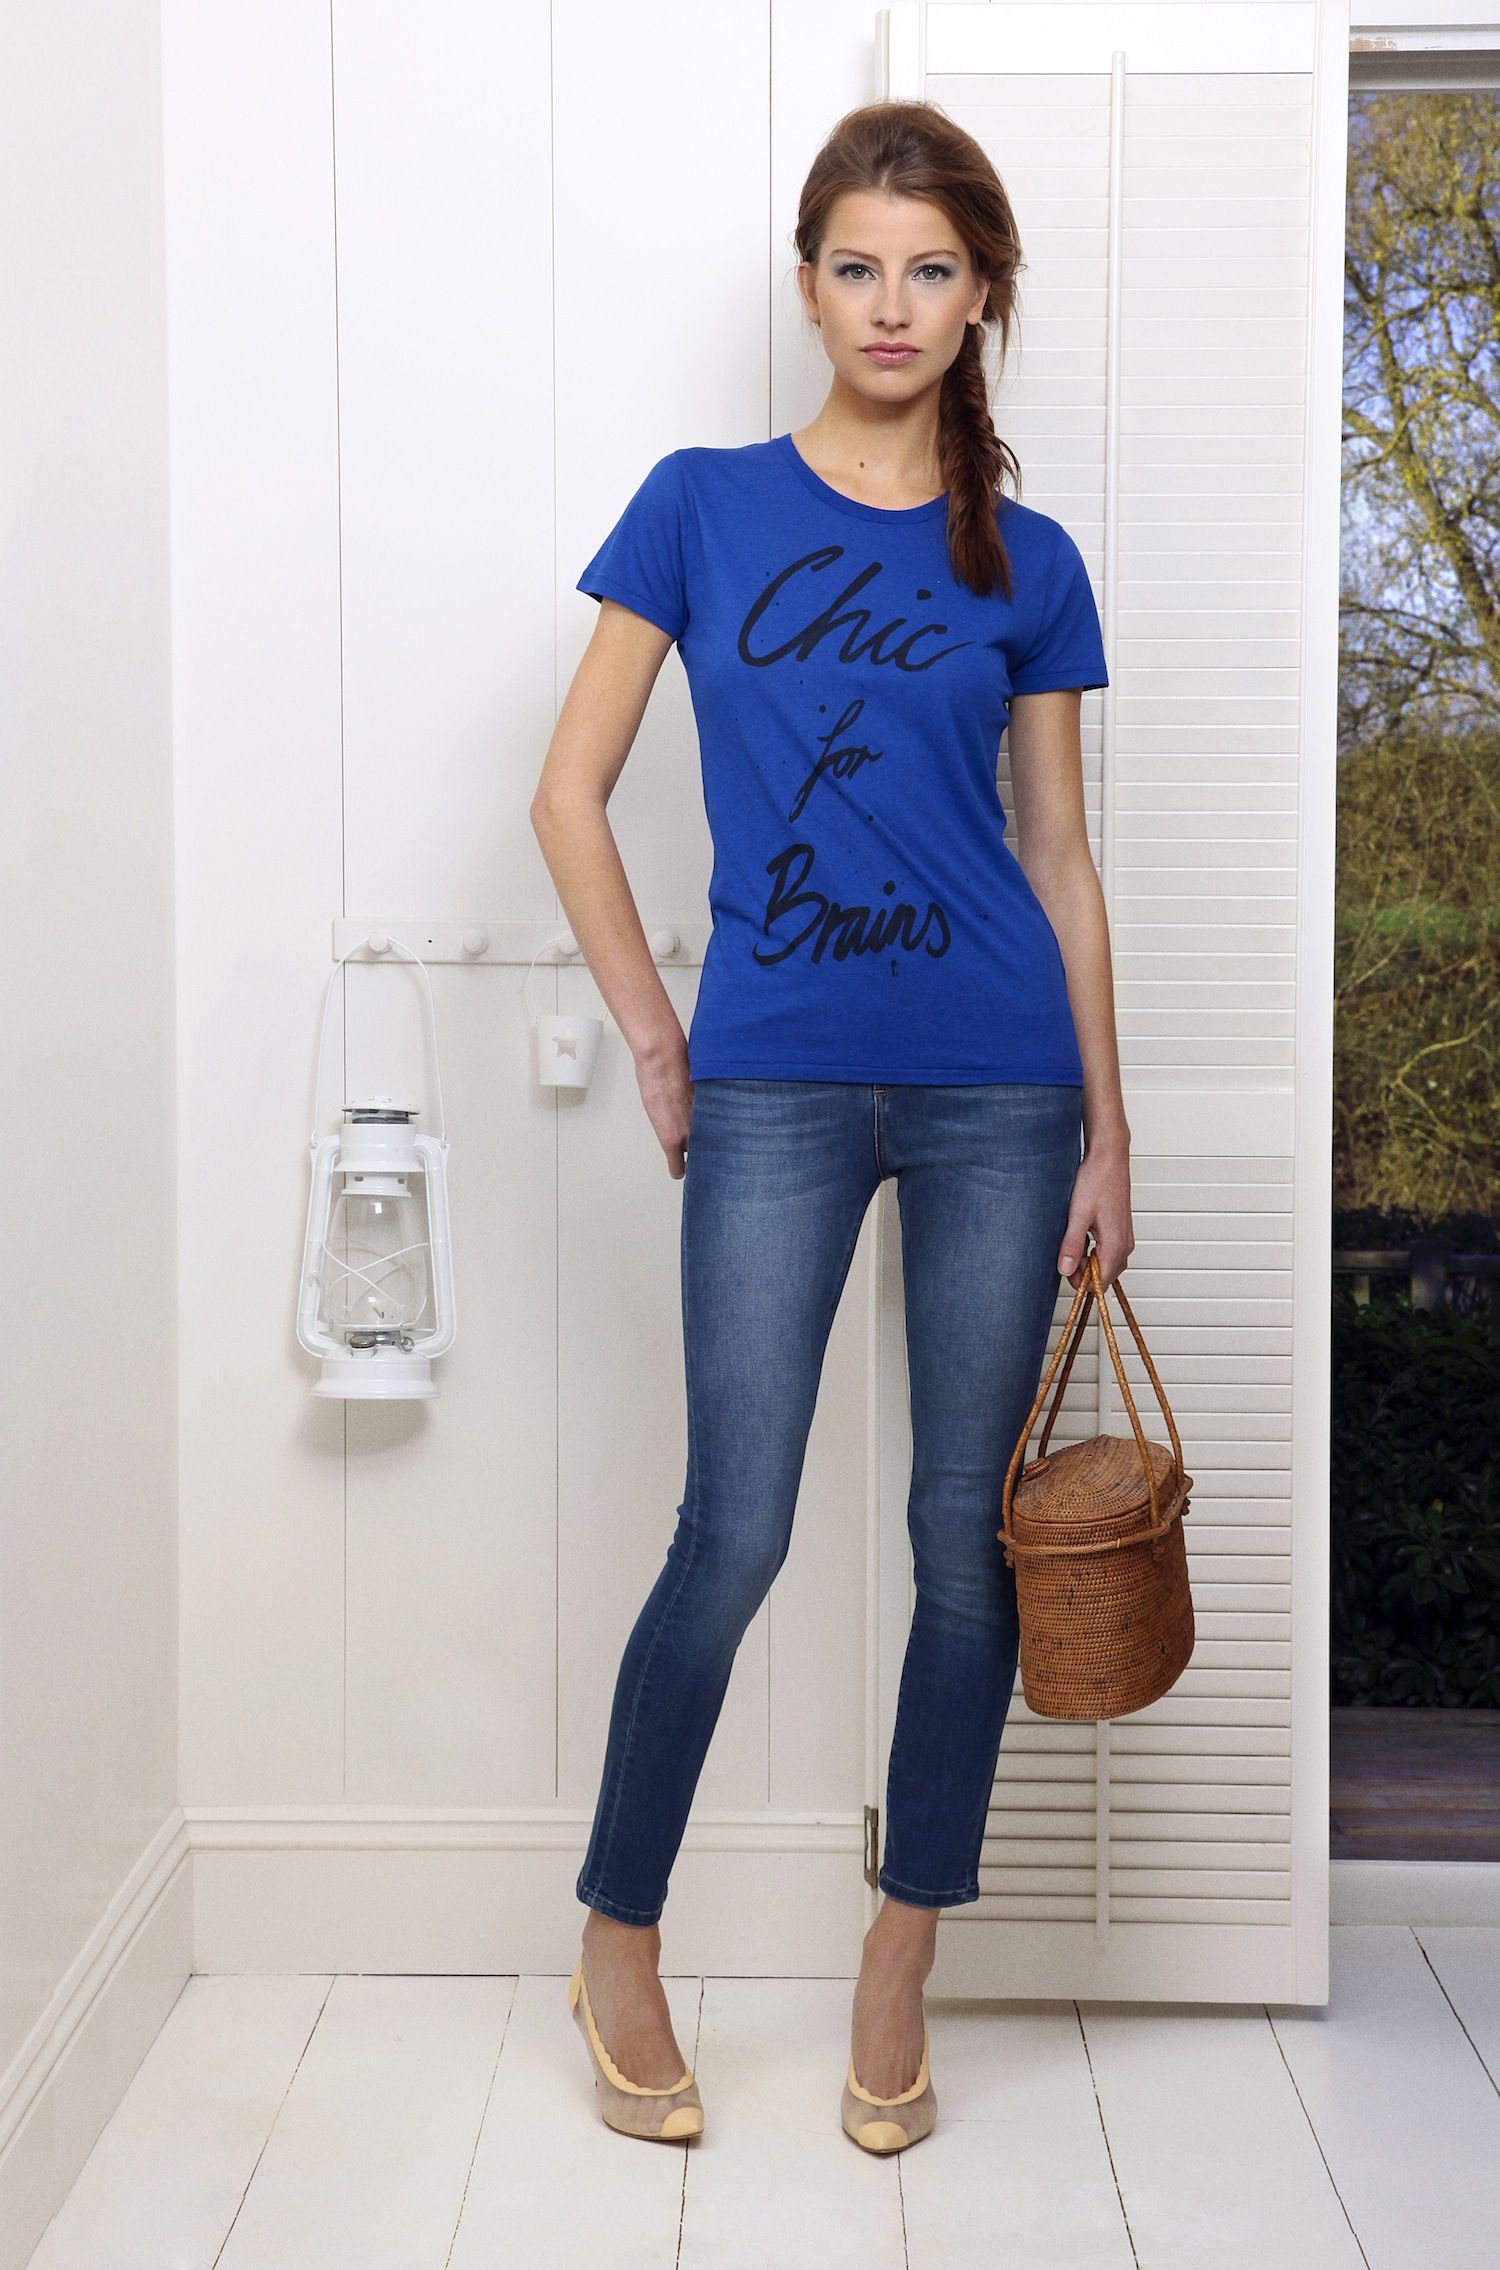 Girl Next Door Clothing Style Images Galleries With A Bite